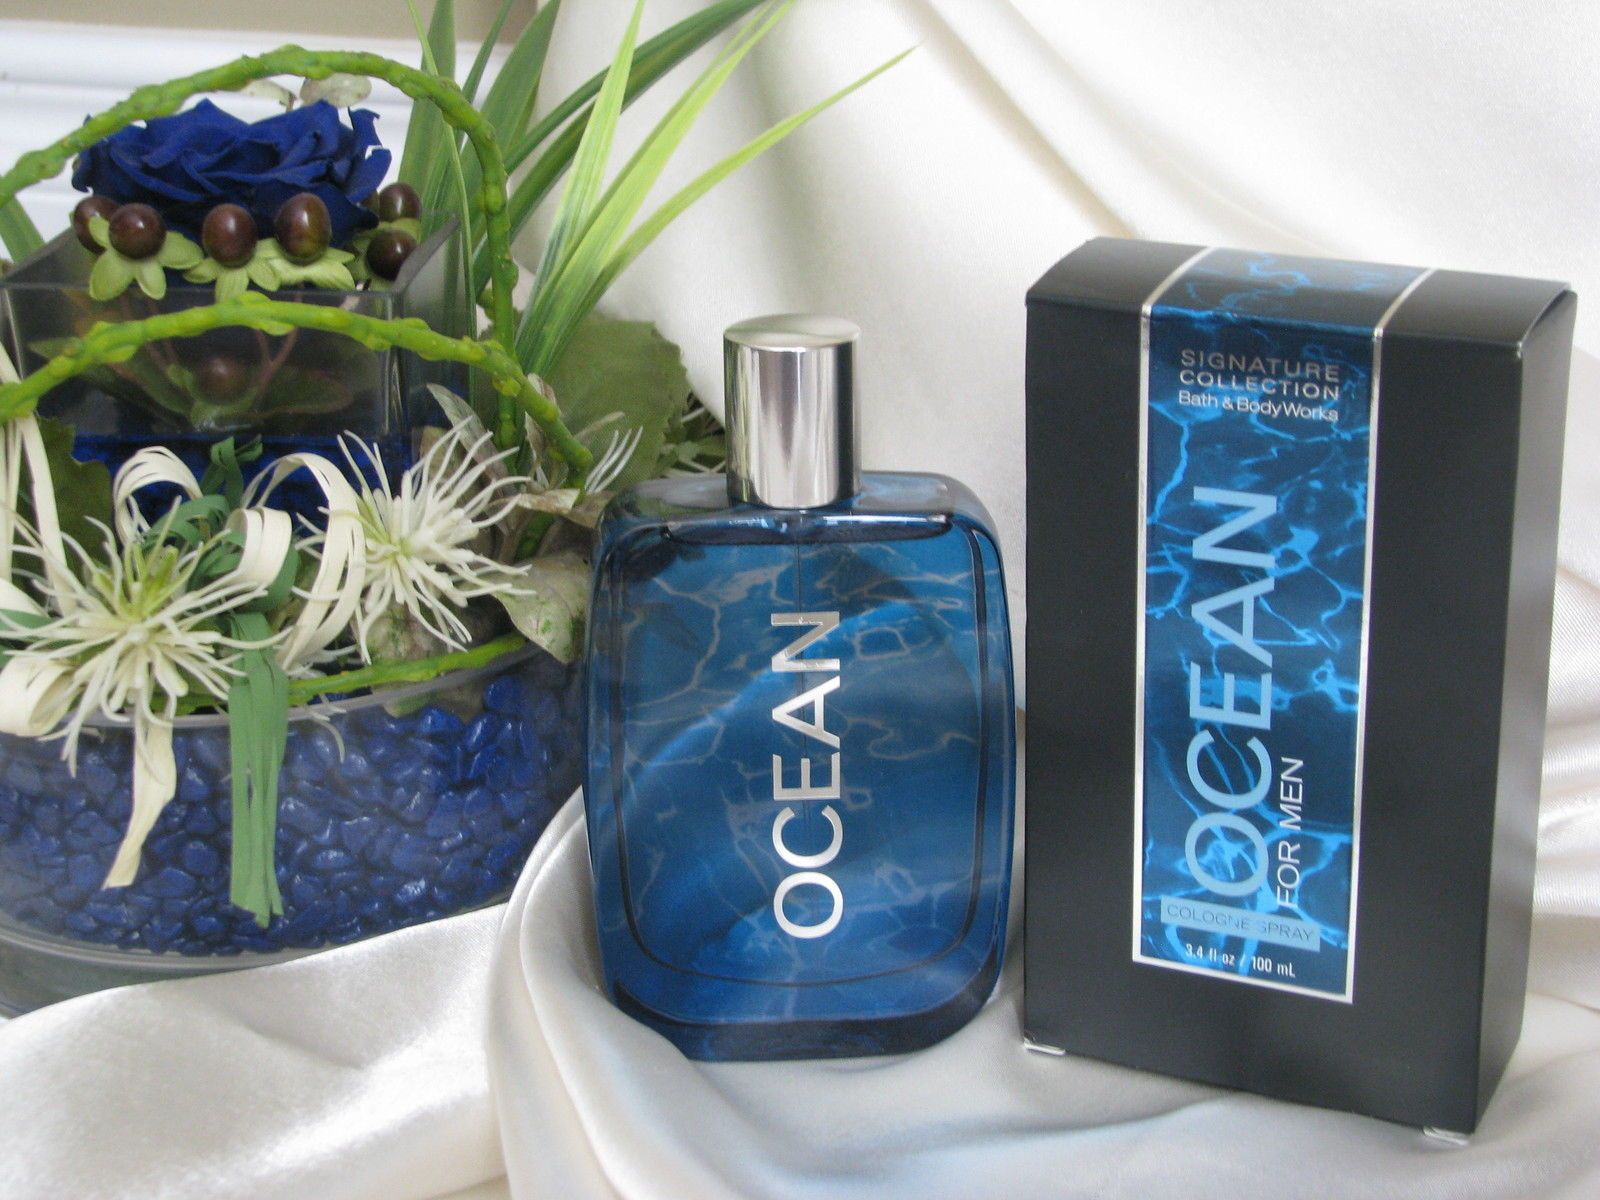 Bath and Body Works Signature Collection for Men Ocean Cologne Spray 3.4 oz